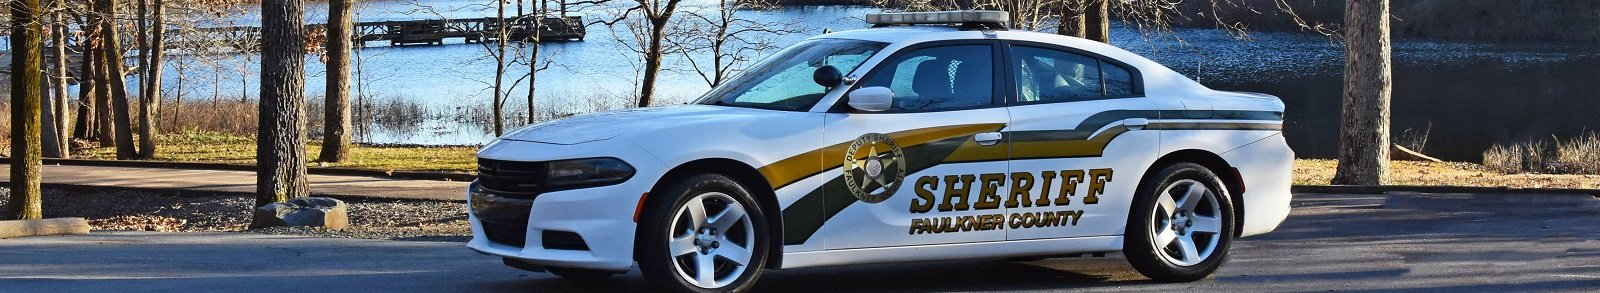 Image of a sheriff squad car